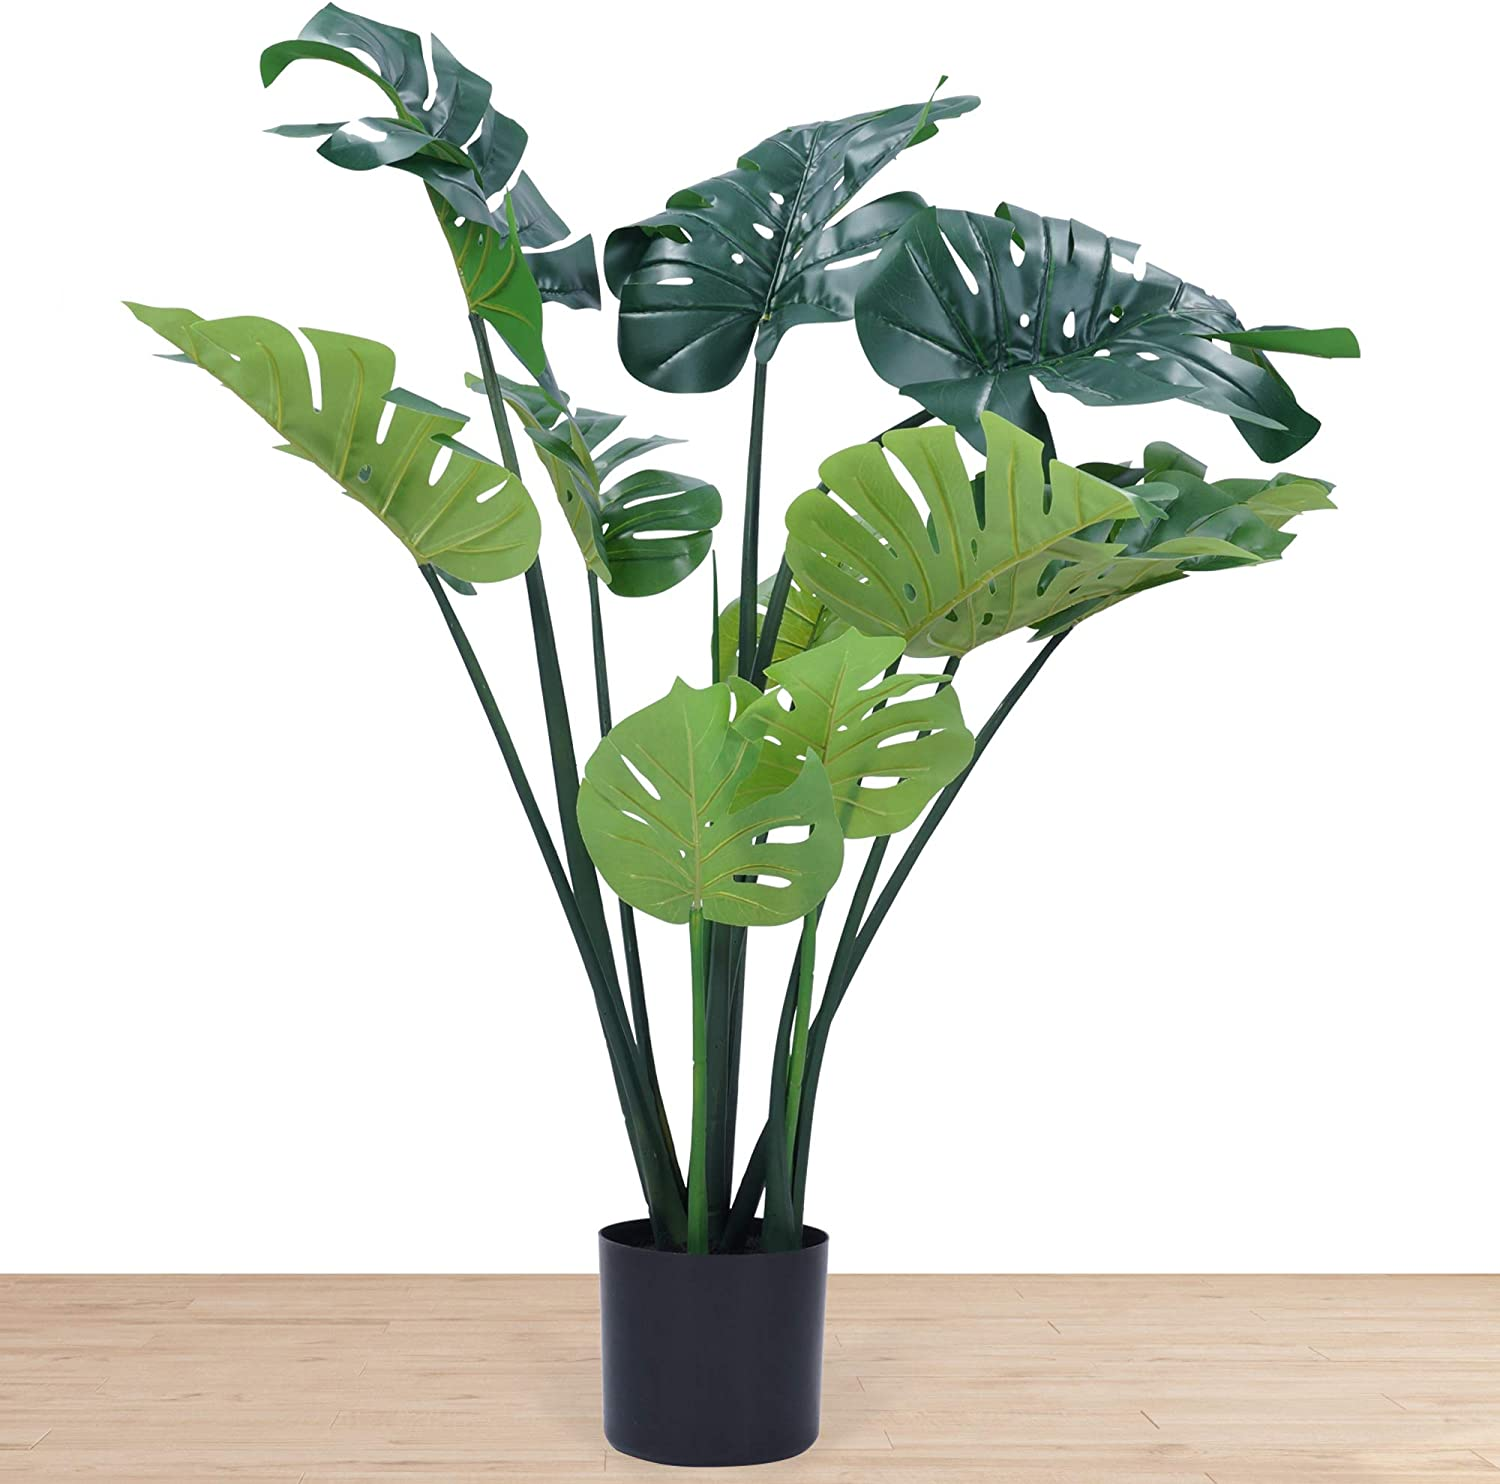 Artificial Monstera Deliciosa Plant 43 Inch Tall Artificial House Plant Faux Monstera Swiss Cheese Plant with Large Leaves Fake Tropical Palm Tree for Indoor Outdoor Home Office Garden Modern Gift